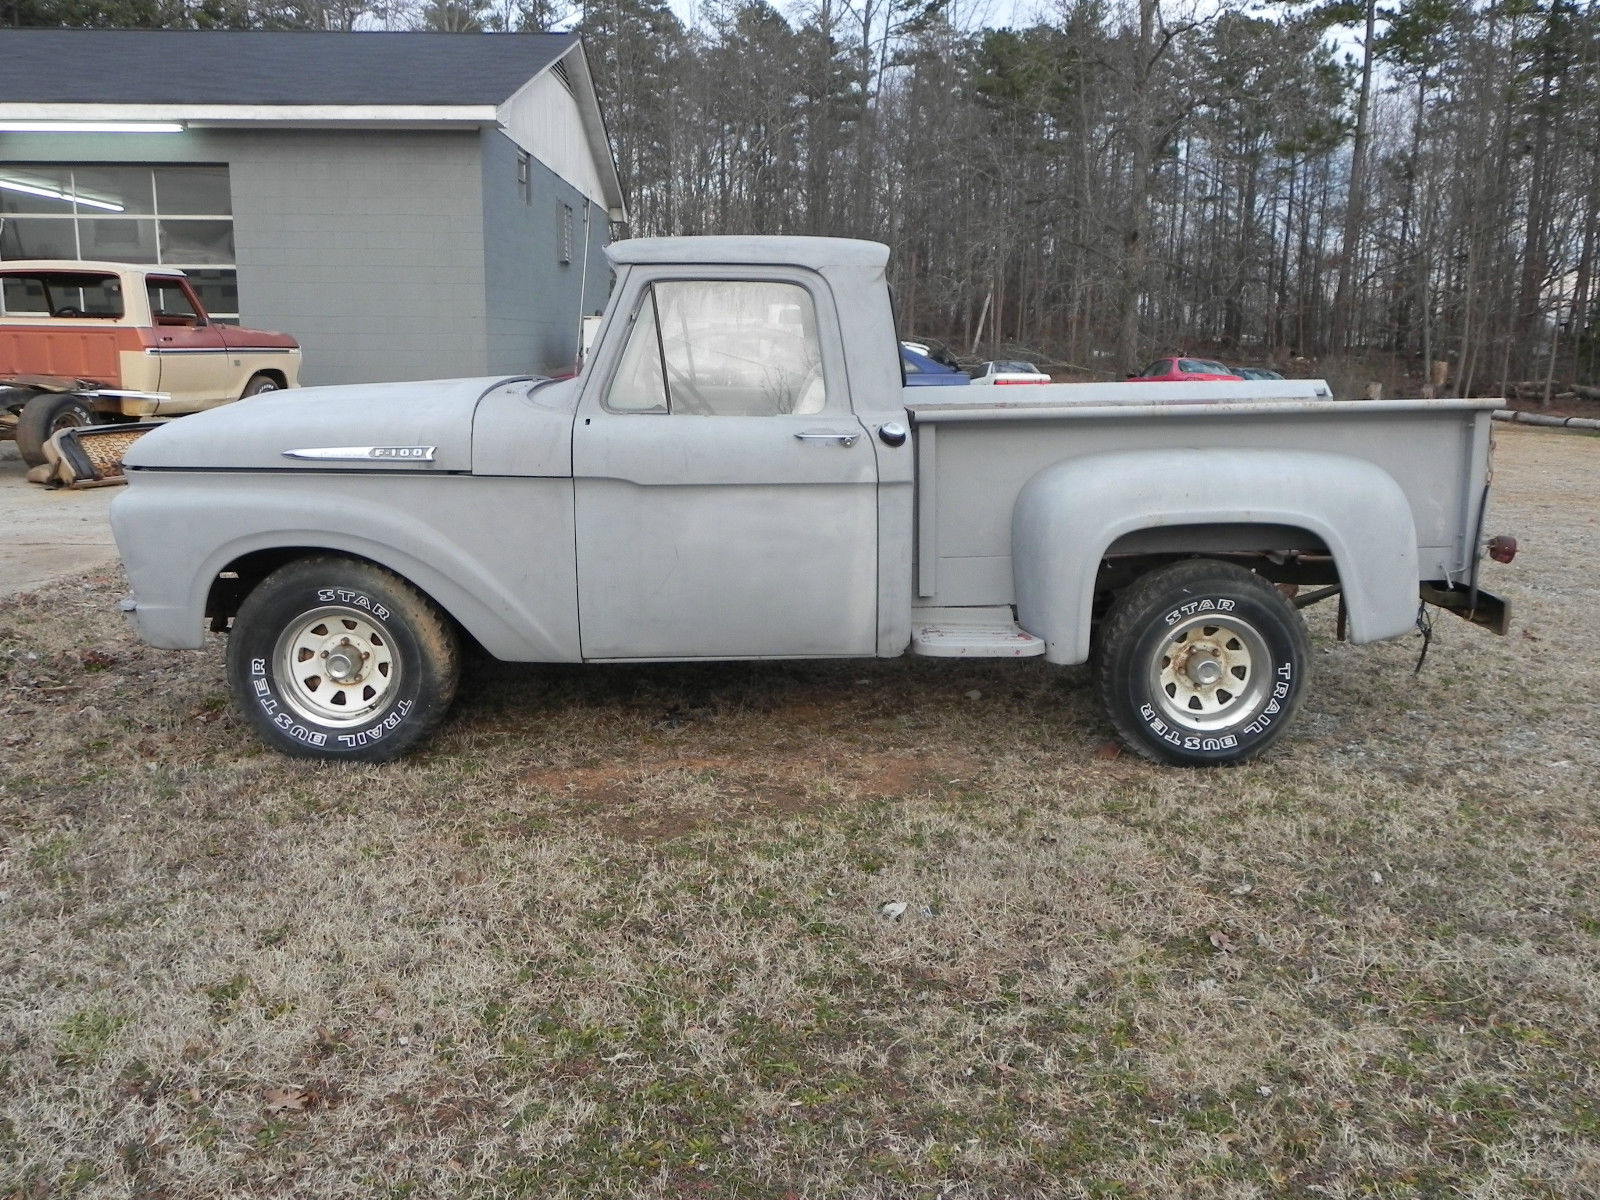 1961 Ford F100 v8 292 project rat rod stepside for sale in Blacksburg,  South Carolina, United States